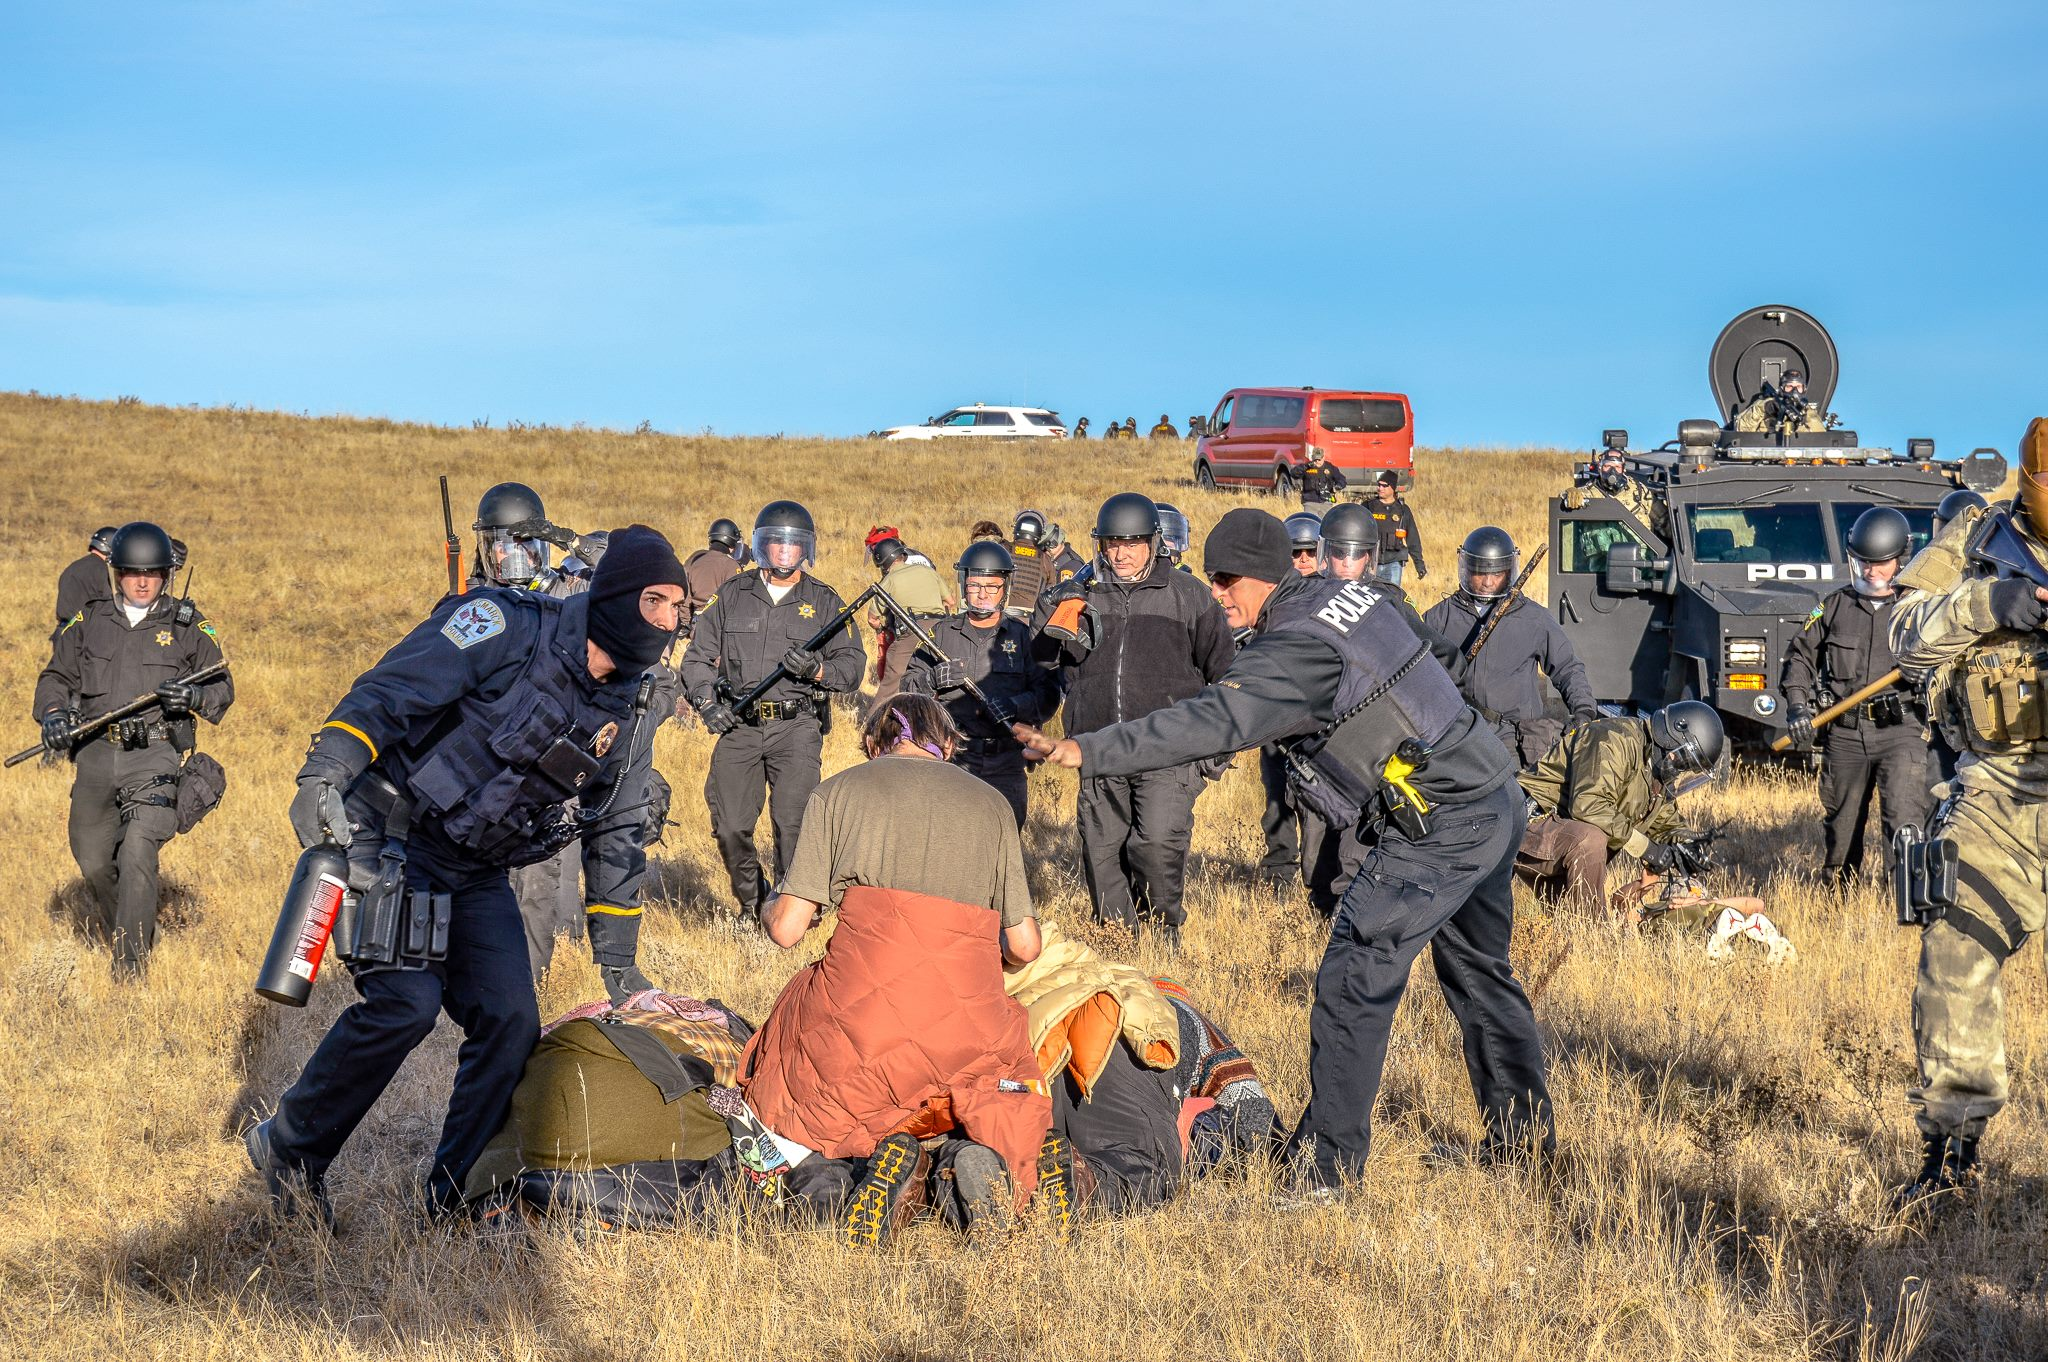 Mary Annette Pember: North Dakota embarks on #NoDAPL crackdown